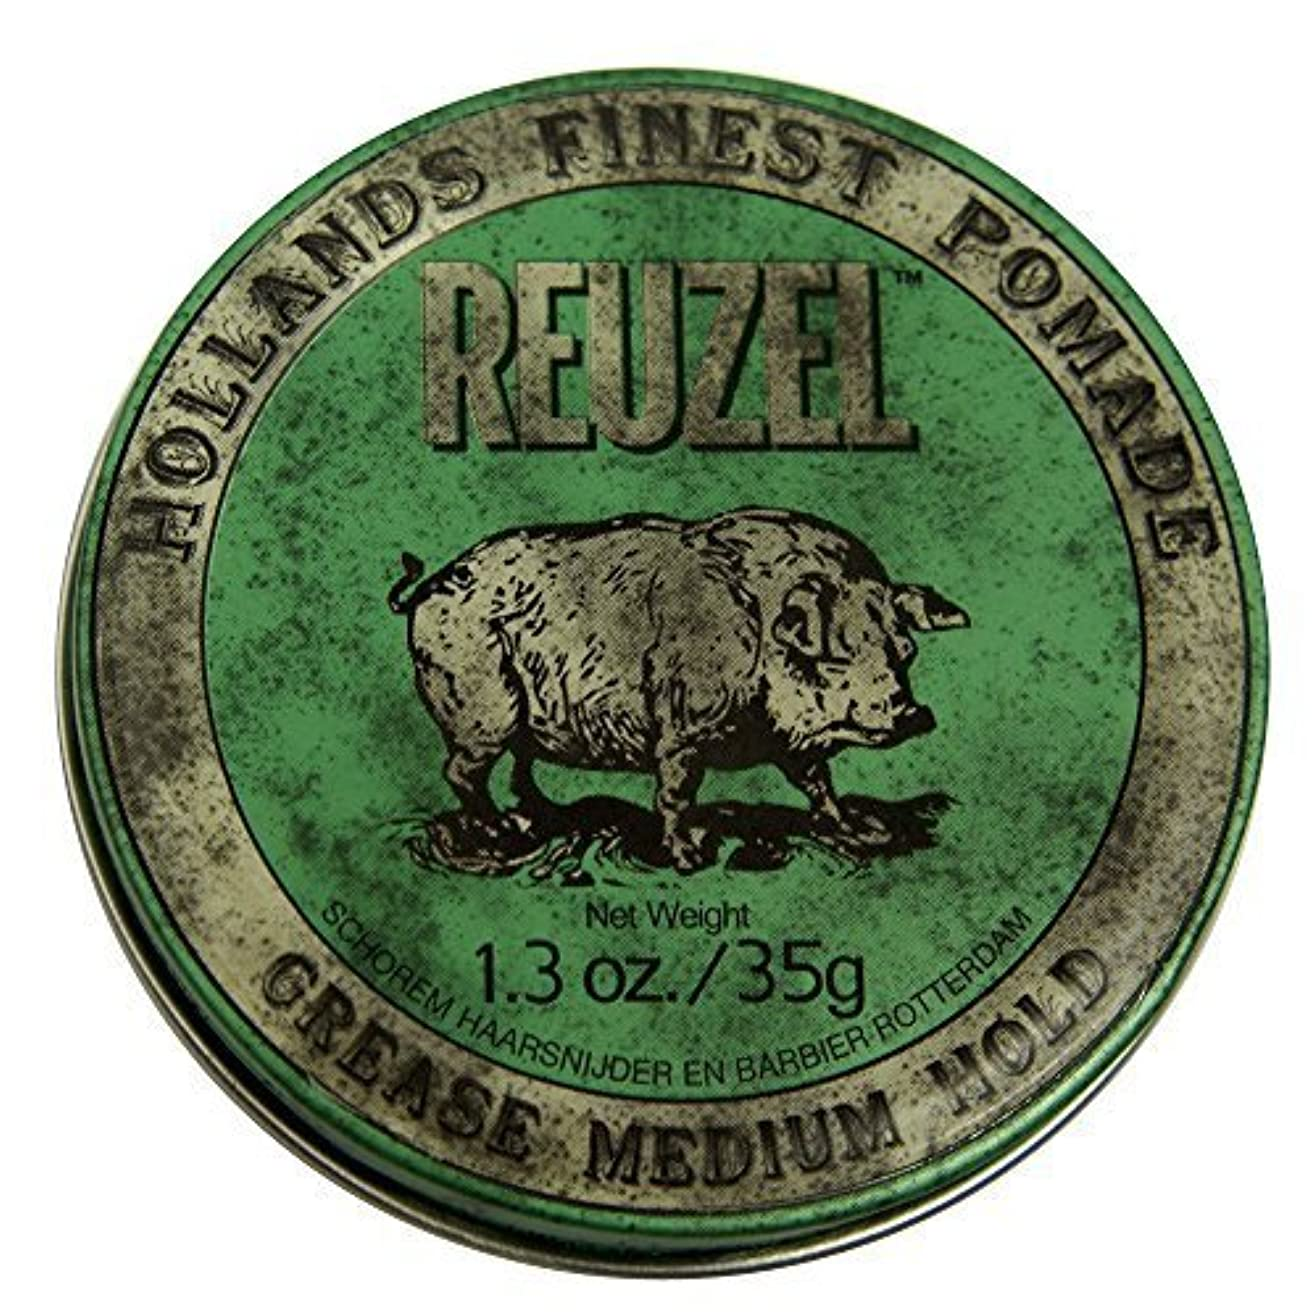 やさしい夜の動物園雰囲気by Reuzel Reuzel Green Grease Medium Hold Hair Styling Pomade Piglet 1.3oz (35g) Wax/Gel [並行輸入品]